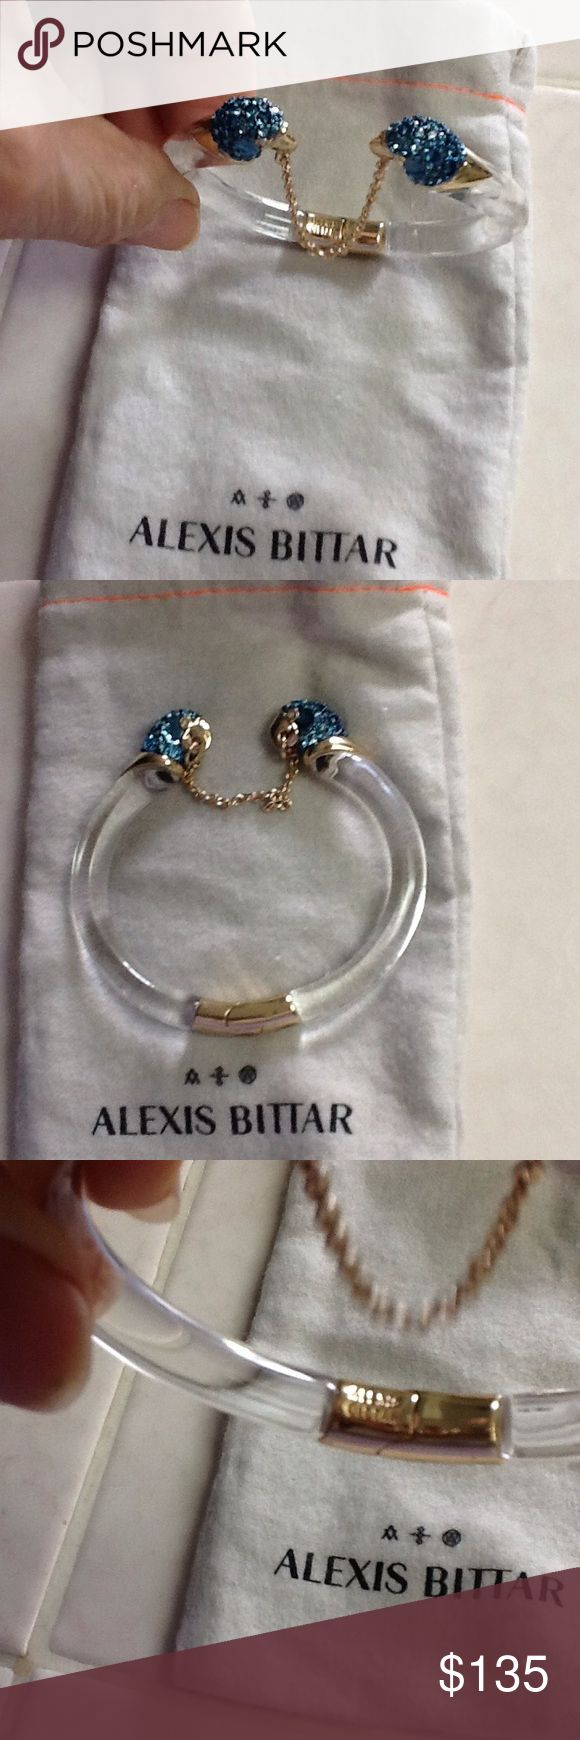 REDUCED‼️ RARE ALEXIS BITTAR PARROT BRACELET NEW Lovely, unique bracelet by Alexis Bittar .  Lucite hinged band, chain with two parrots heads of Swarovski crystals.  Alexis Bittar signature on hinge.  New, never worn. Alexis Bittar Jewelry Bracelets